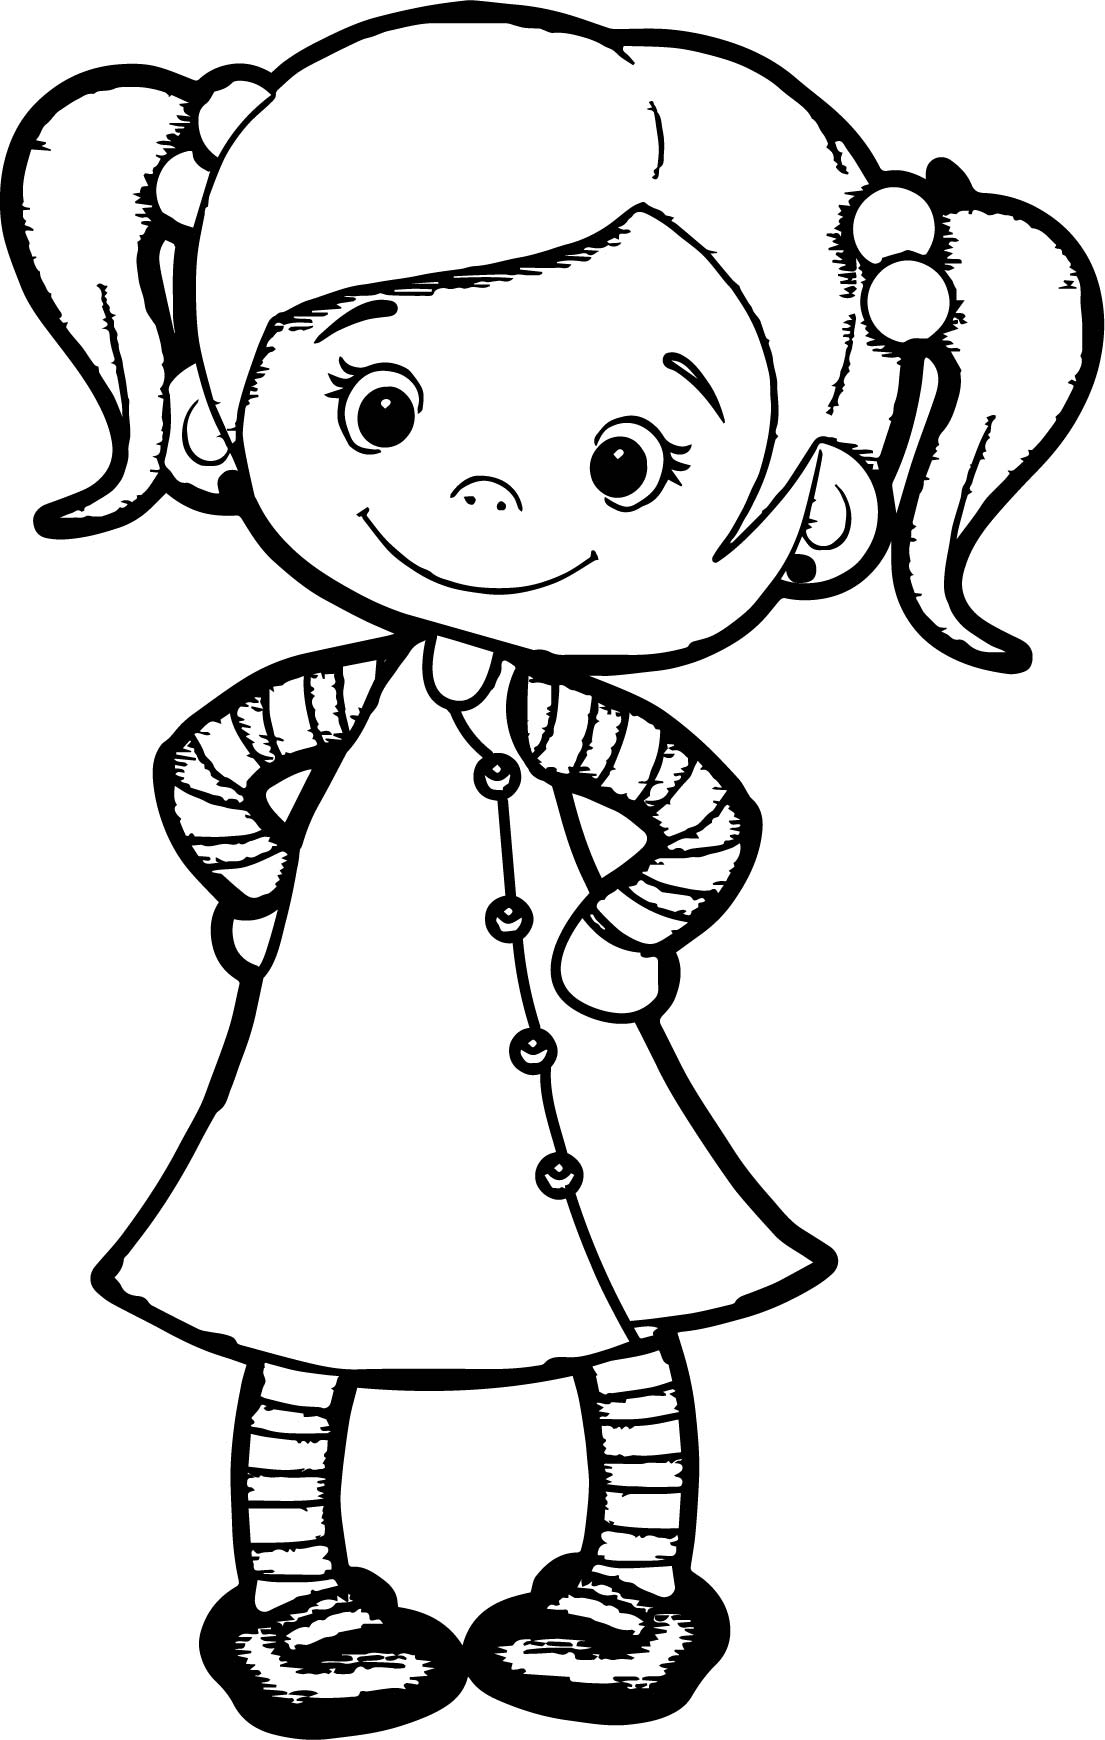 girl colouring pictures beautiful cute girl coloring page wecoloringpagecom pictures colouring girl